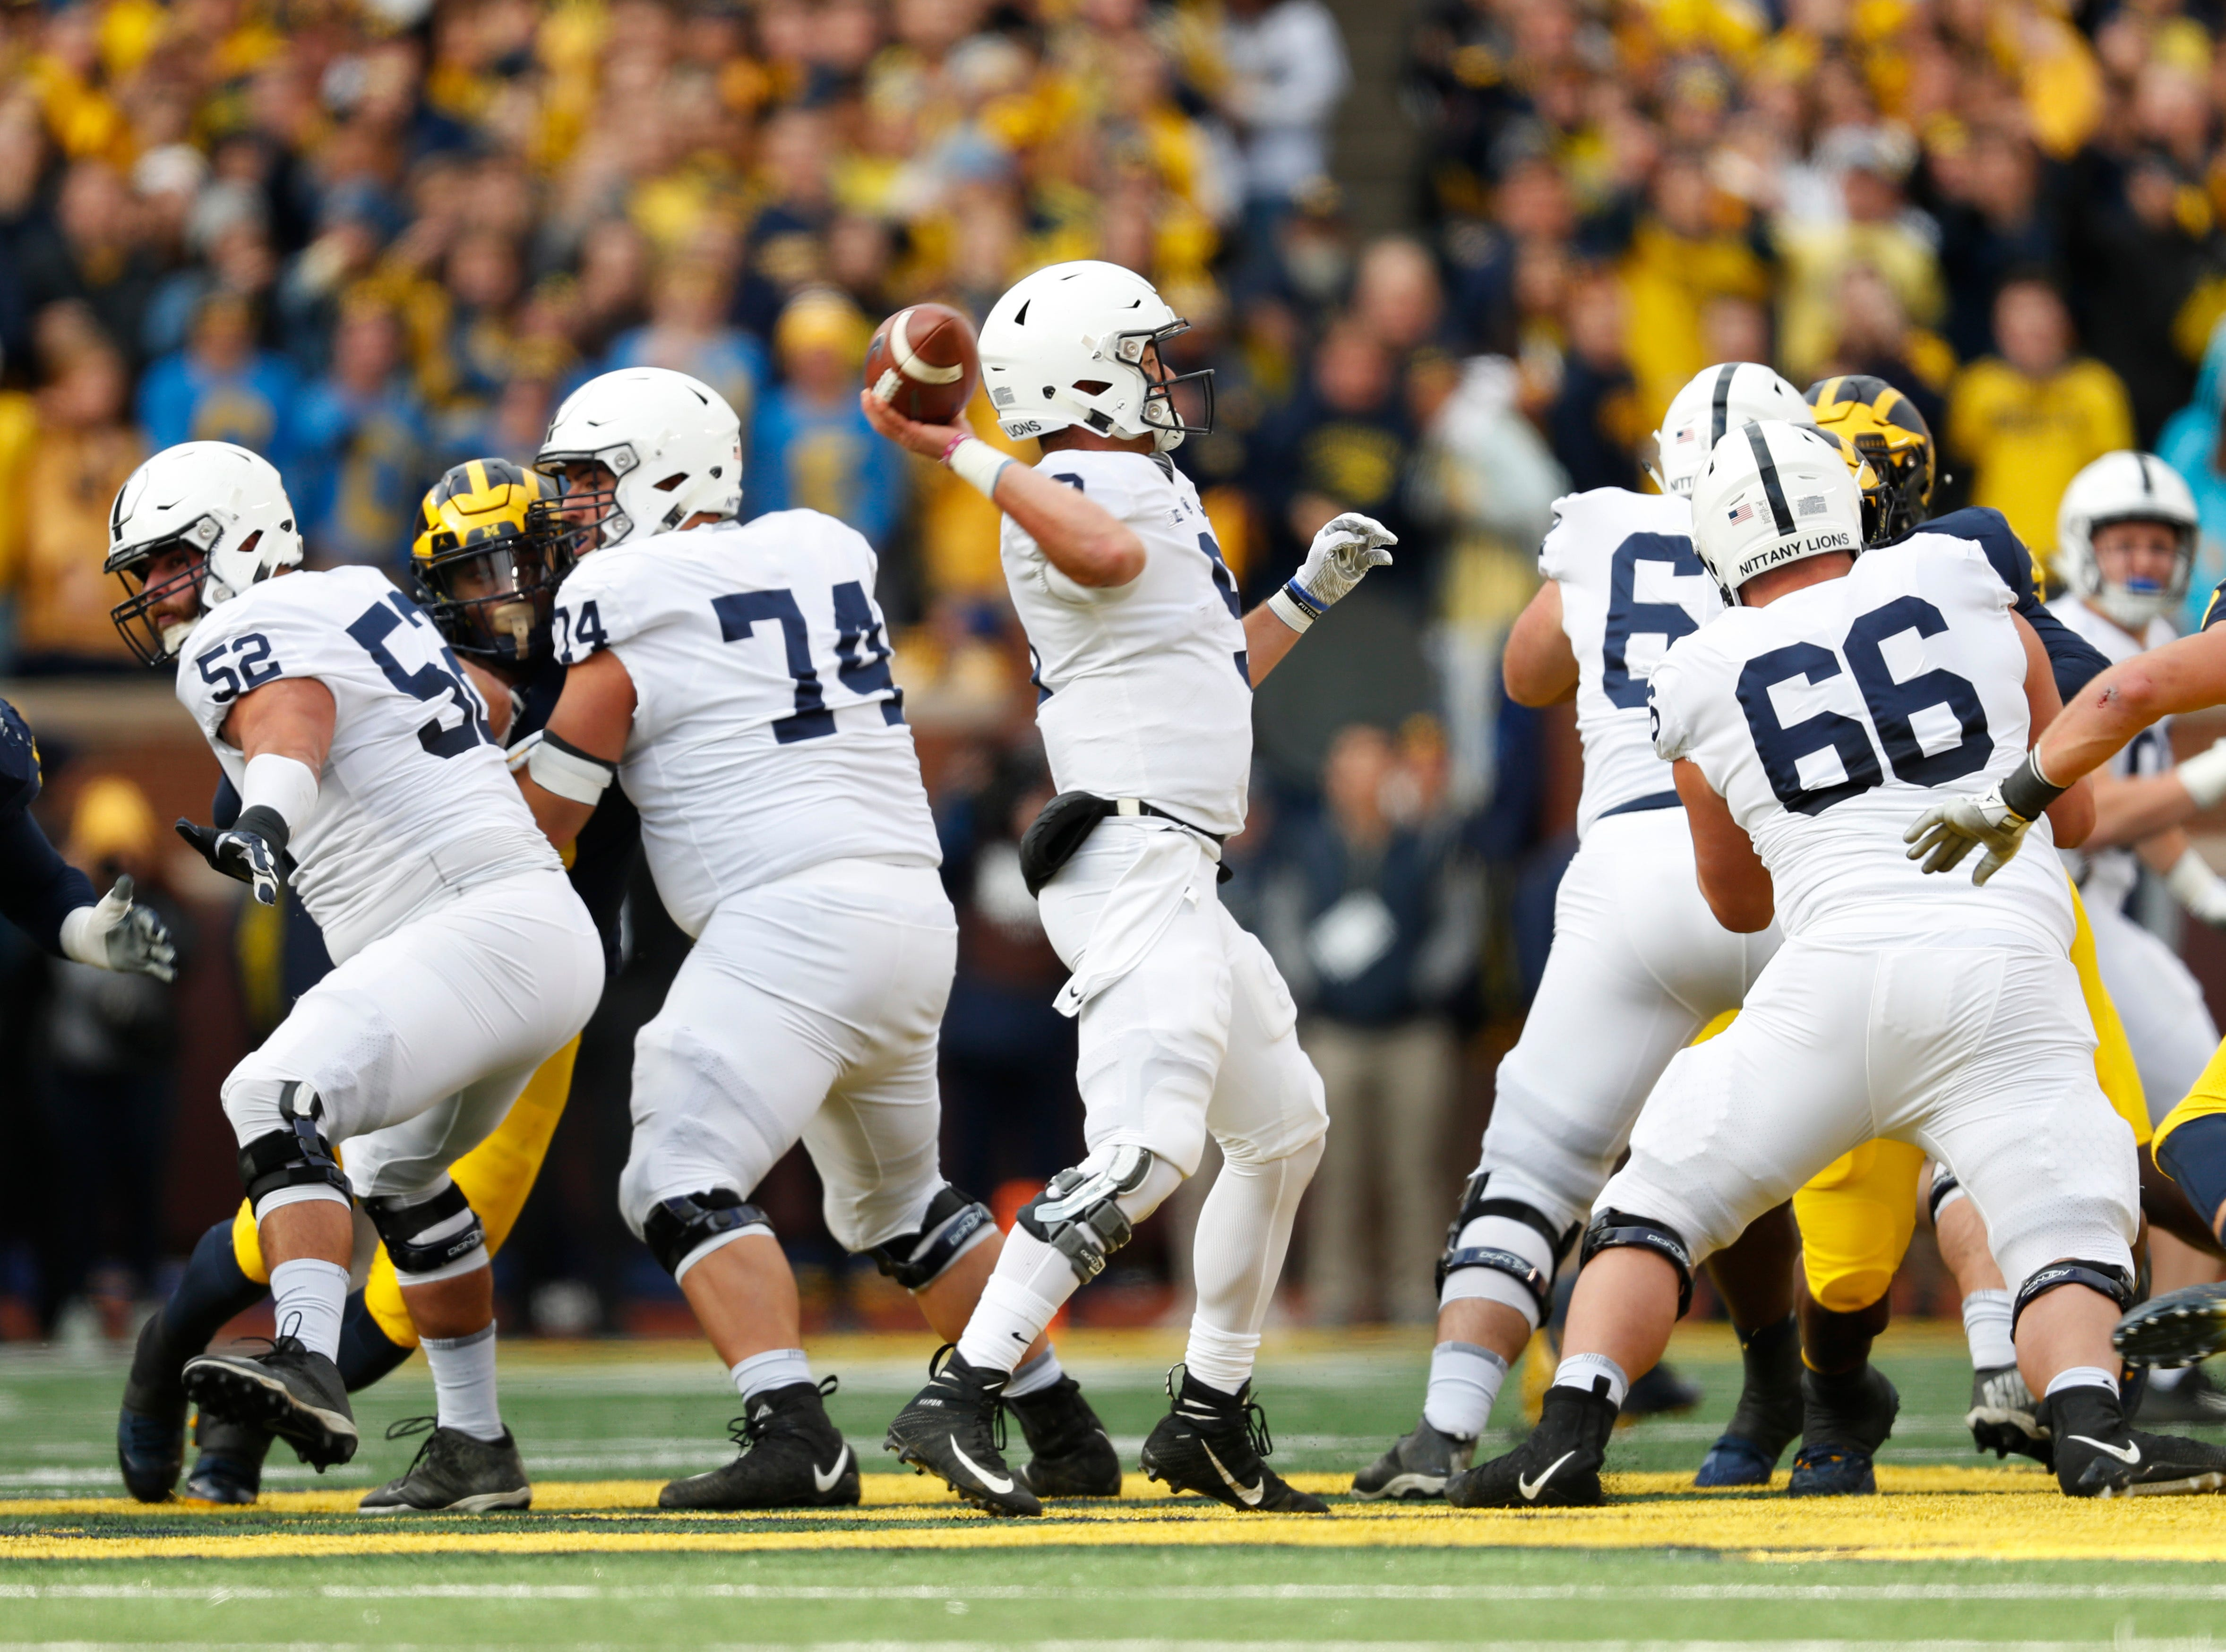 Penn State quarterback Trace McSorley (9) throws against Michigan in the first half of an NCAA college football game in Ann Arbor, Mich., Saturday, Nov. 3, 2018. (AP Photo/Paul Sancya)